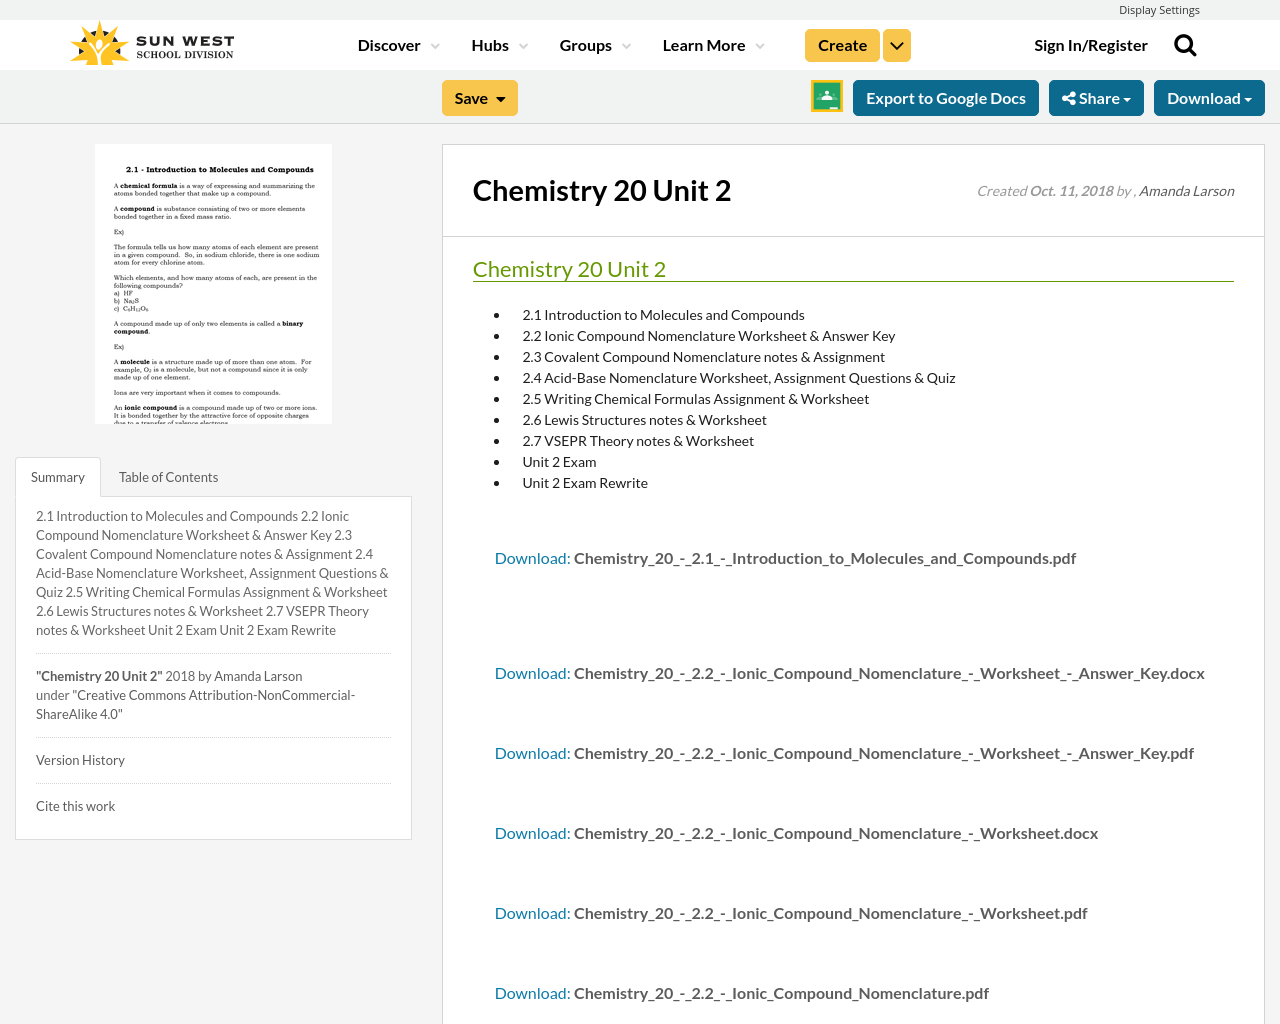 Chemistry 20 Unit 2 Resource Bank